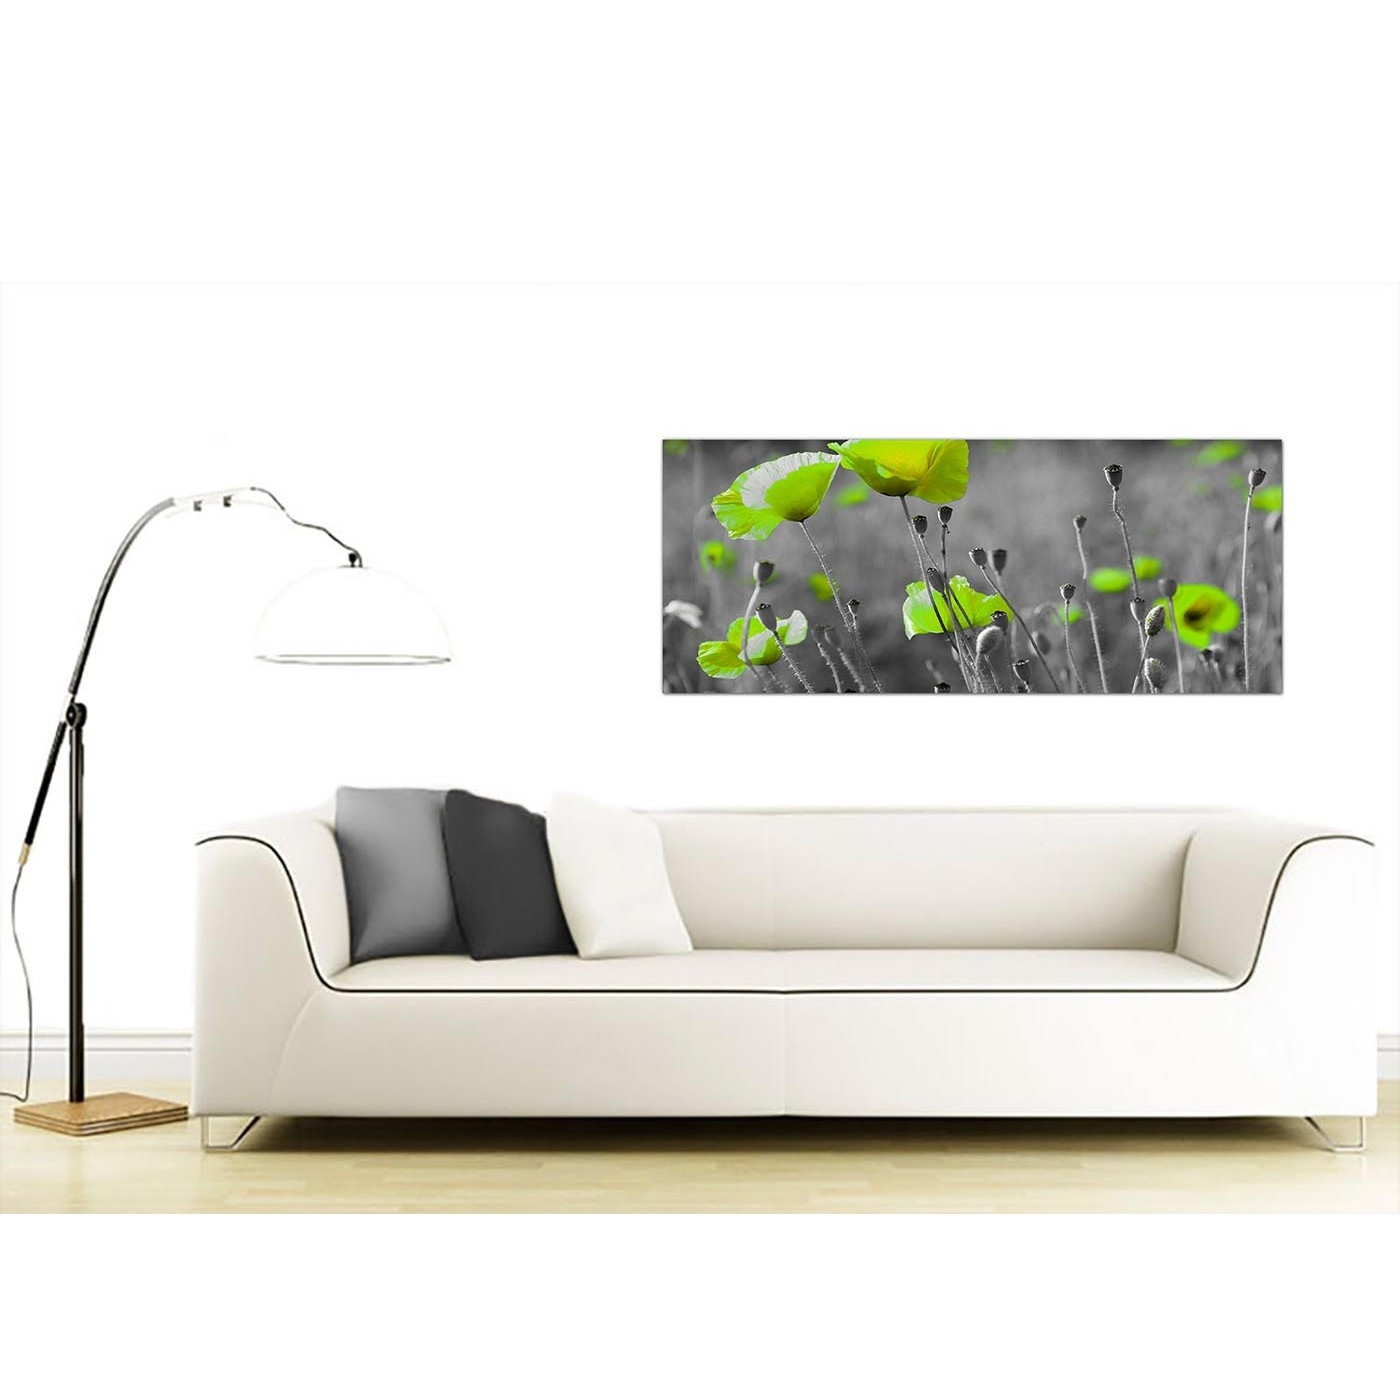 Cheap Black And White Canvas Wall Art Of Green Poppies Pertaining To Latest Cheap Large Wall Art (View 3 of 20)